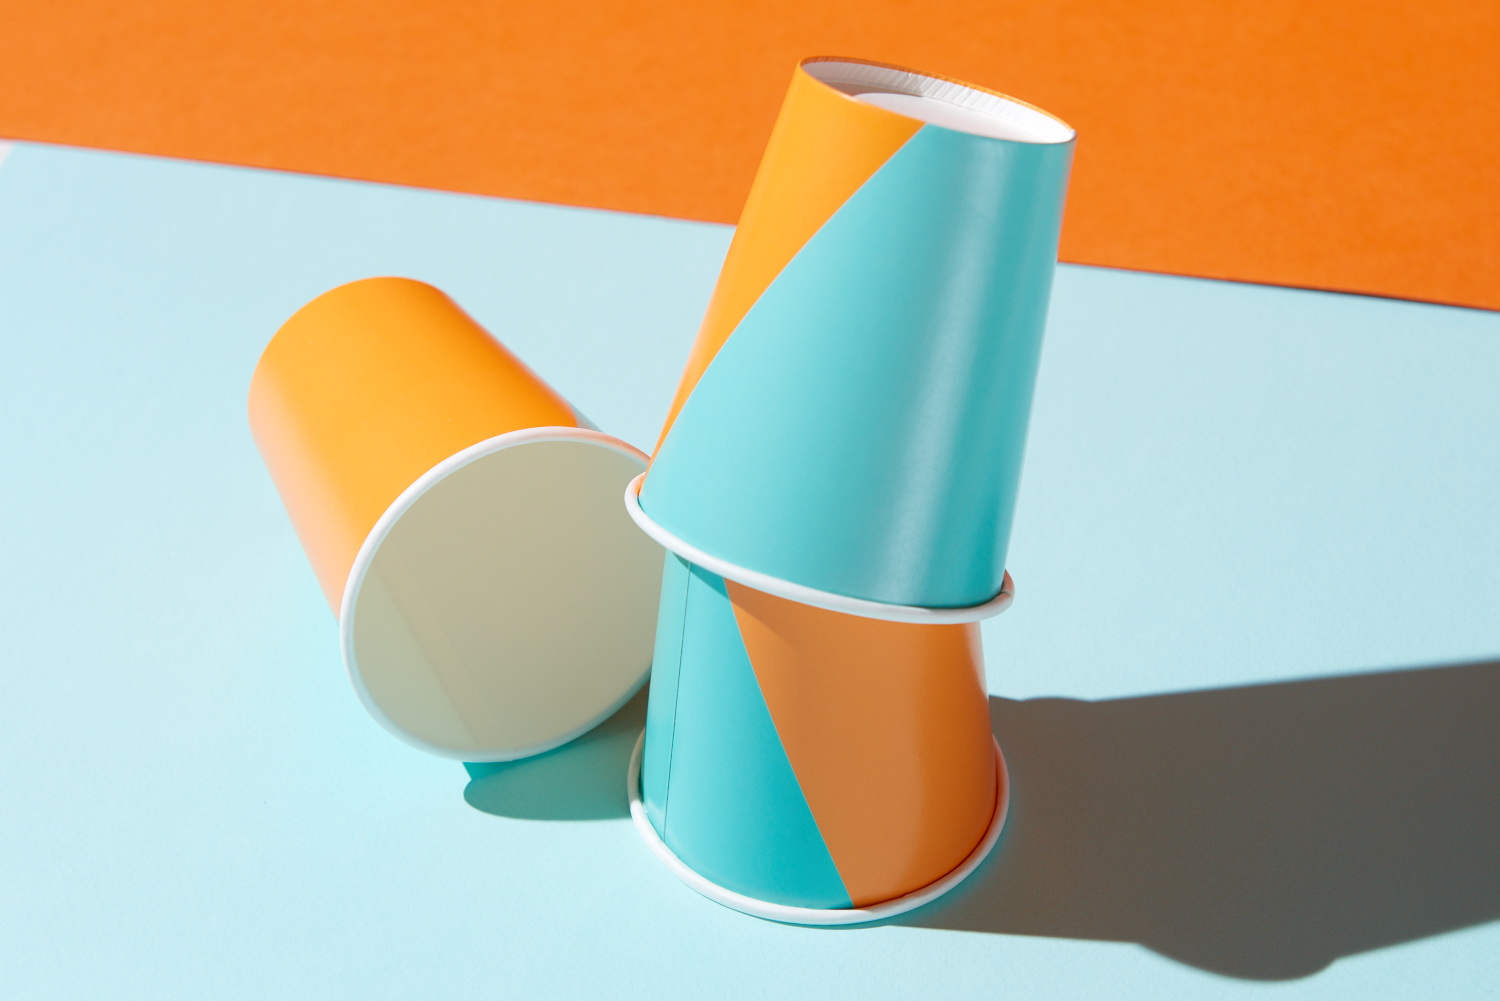 Cups - personal work